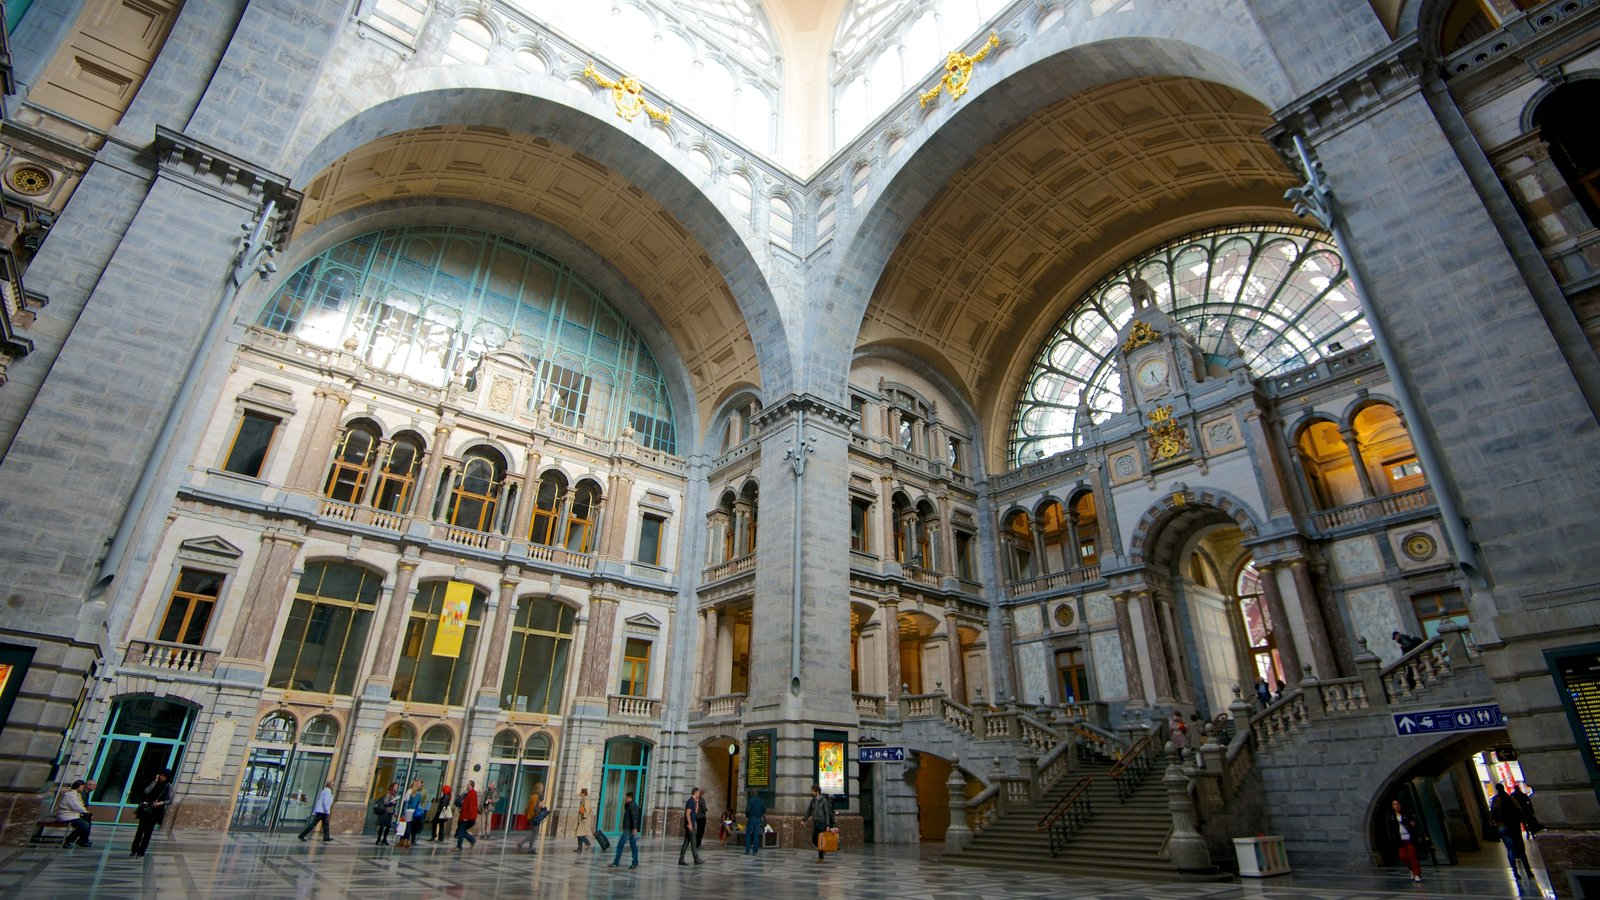 Antwerp Central Station featuring heritage architecture, interior views and railway items